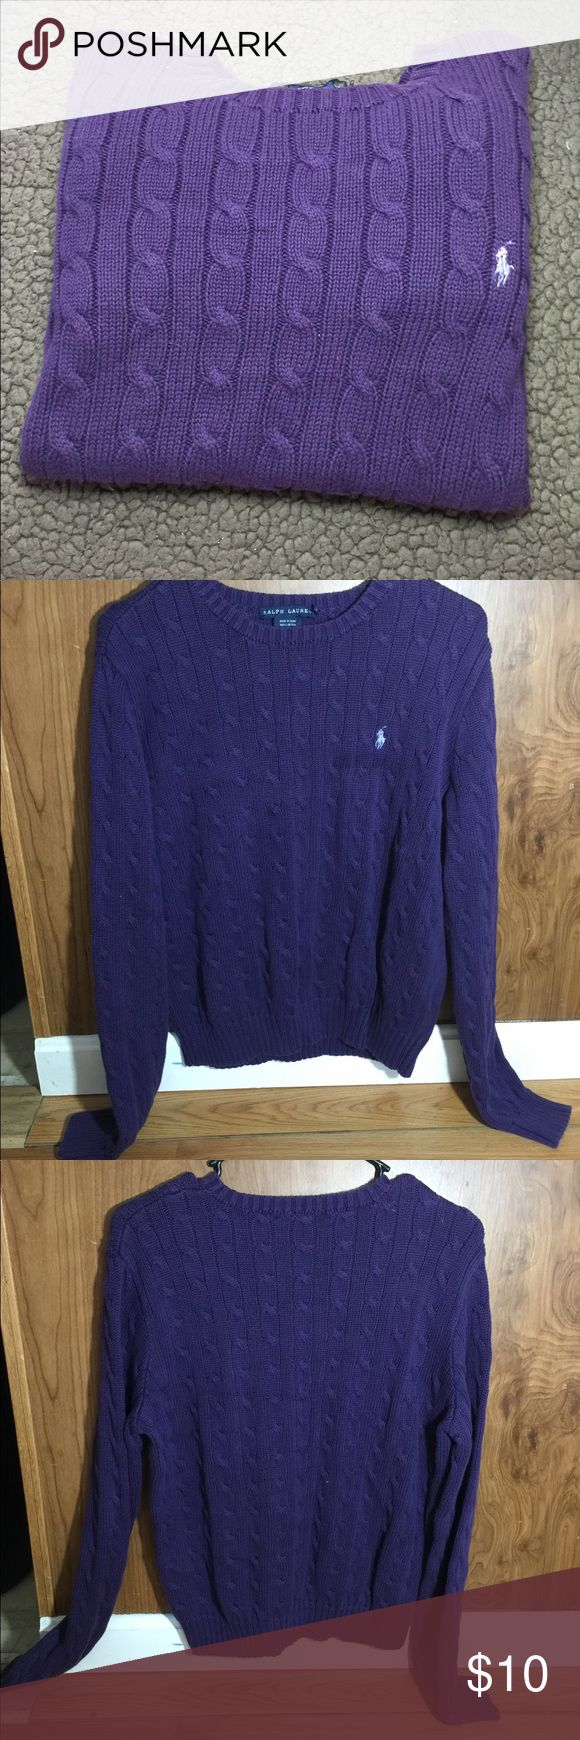 Polo Ralph Lauren Women's Crewneck cable sweater Good Used Condition  Polo Ralph Lauren  Women's long sleeve cable crewneck sweater  100% cotton Size: XL Color: purple with a purple pony From a smoke free and pet free home No stains Just a small hole in 1 armpit (see last picture) Ralph Lauren Sweaters Crew & Scoop Necks